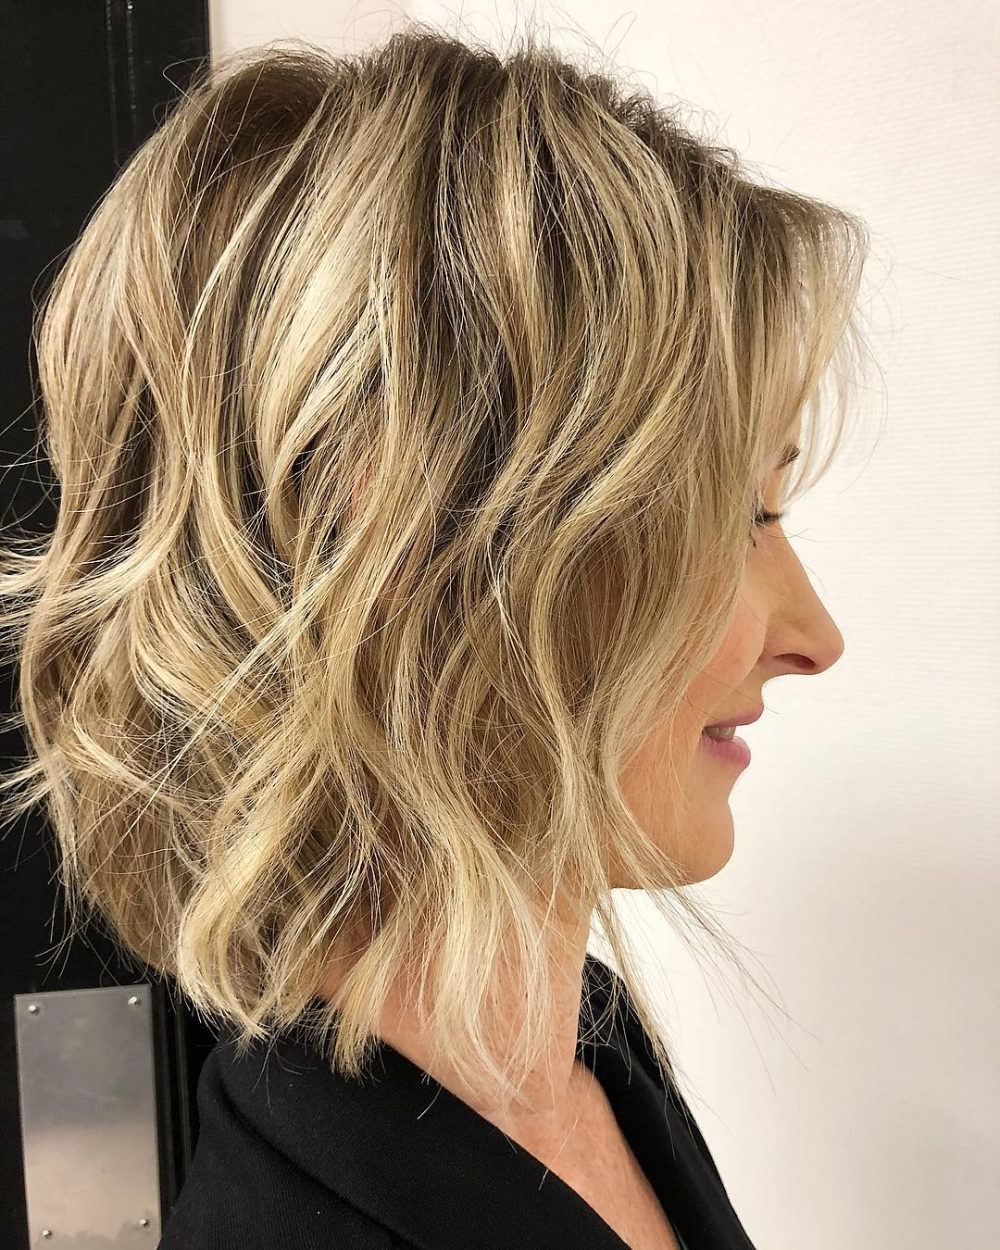 43 Perfect Short Hairstyles For Fine Hair In 2018 With Regard To Short To Medium Feminine Layered Haircuts (View 6 of 20)